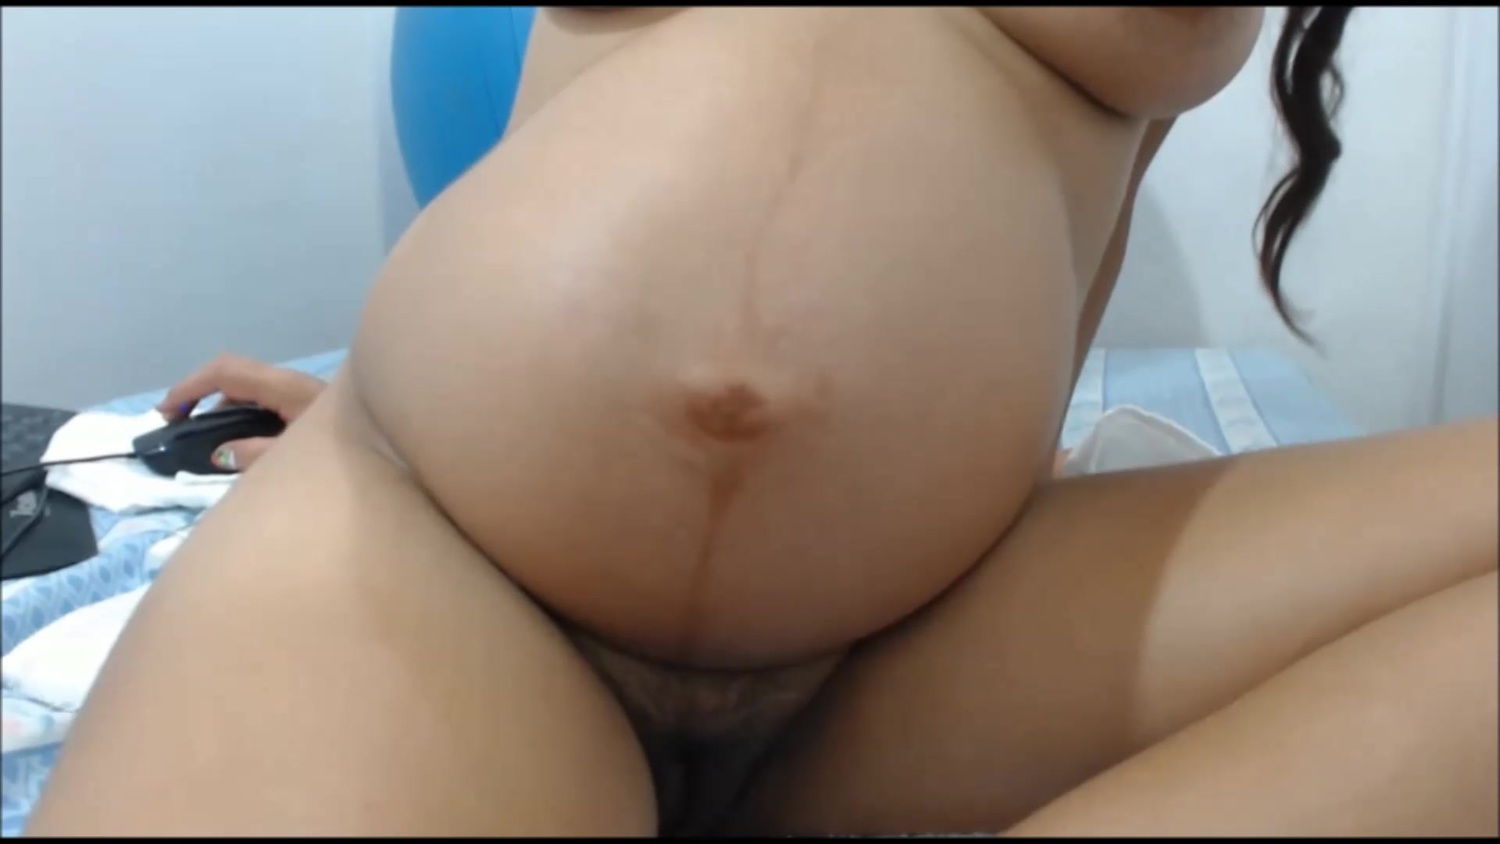 19yo 1st time on cam cum full video 10 2